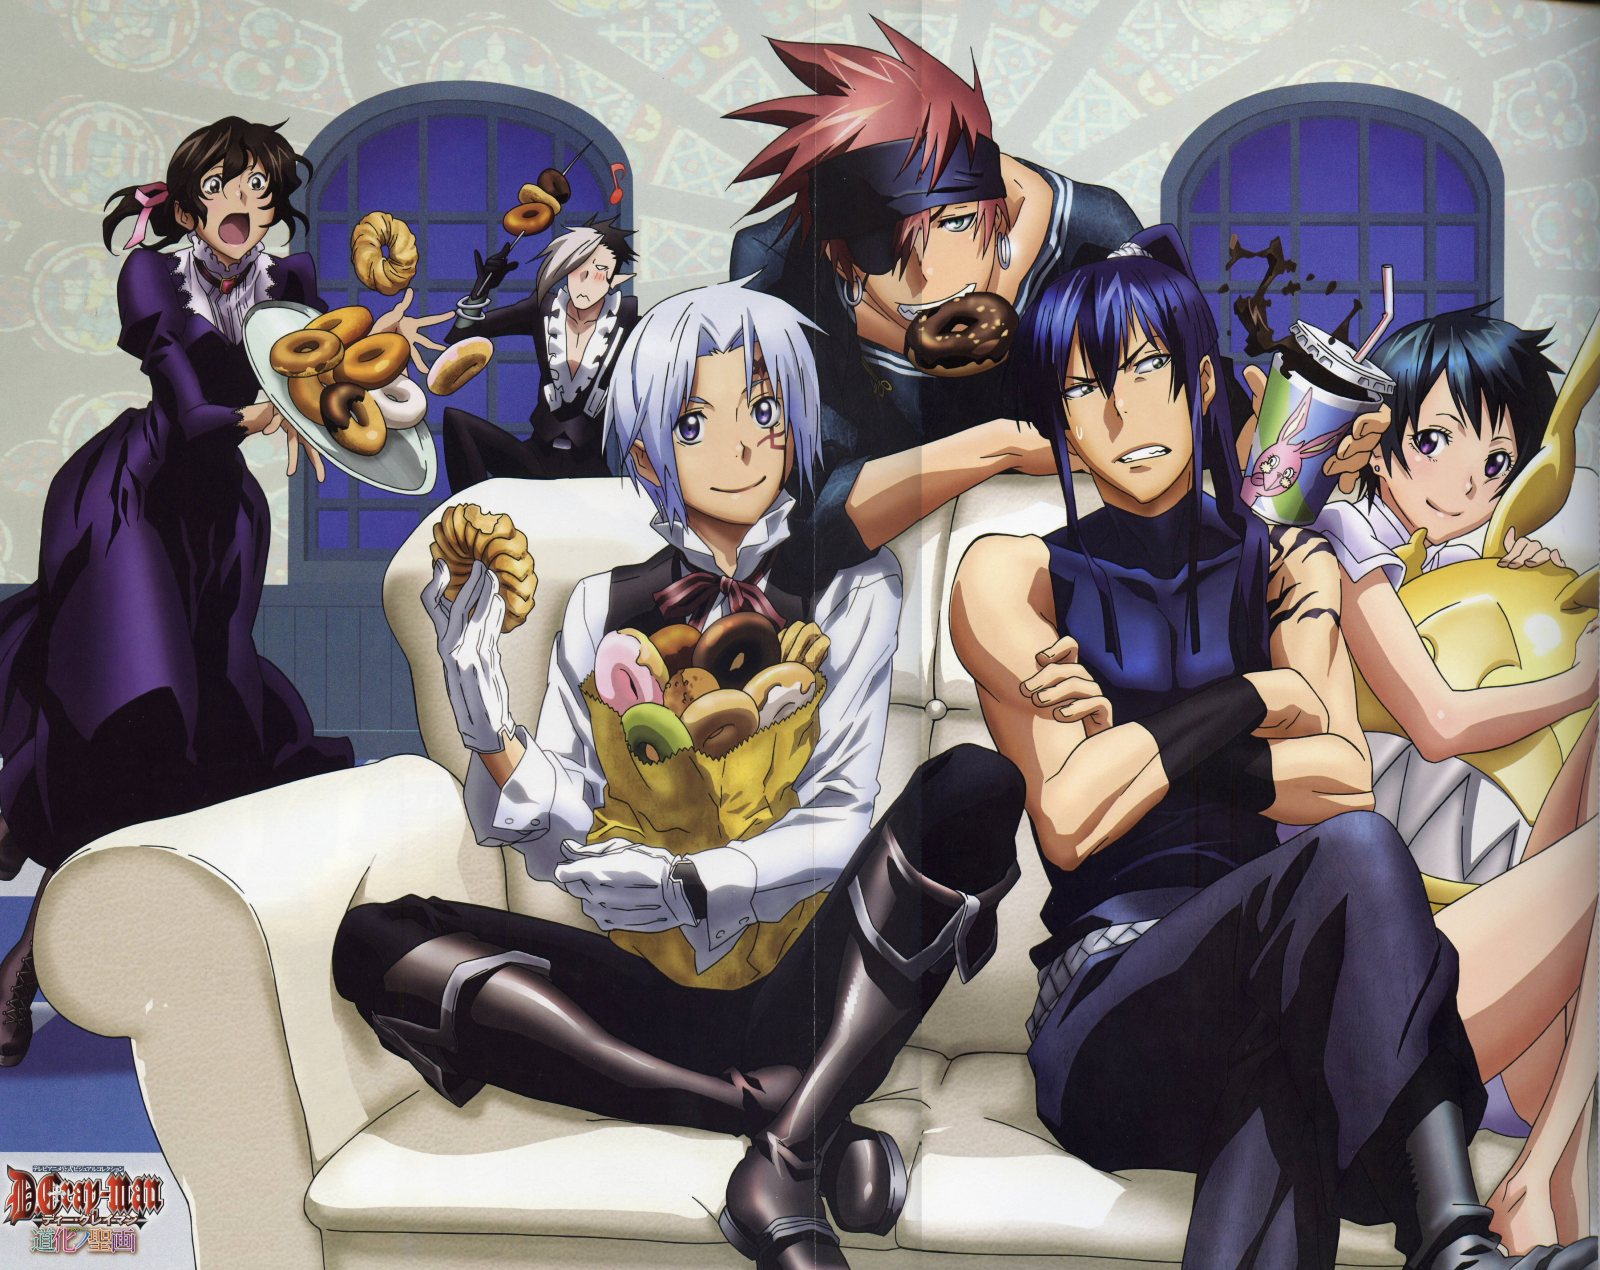 Awesome anime club images d gray man hd wallpaper and background photos